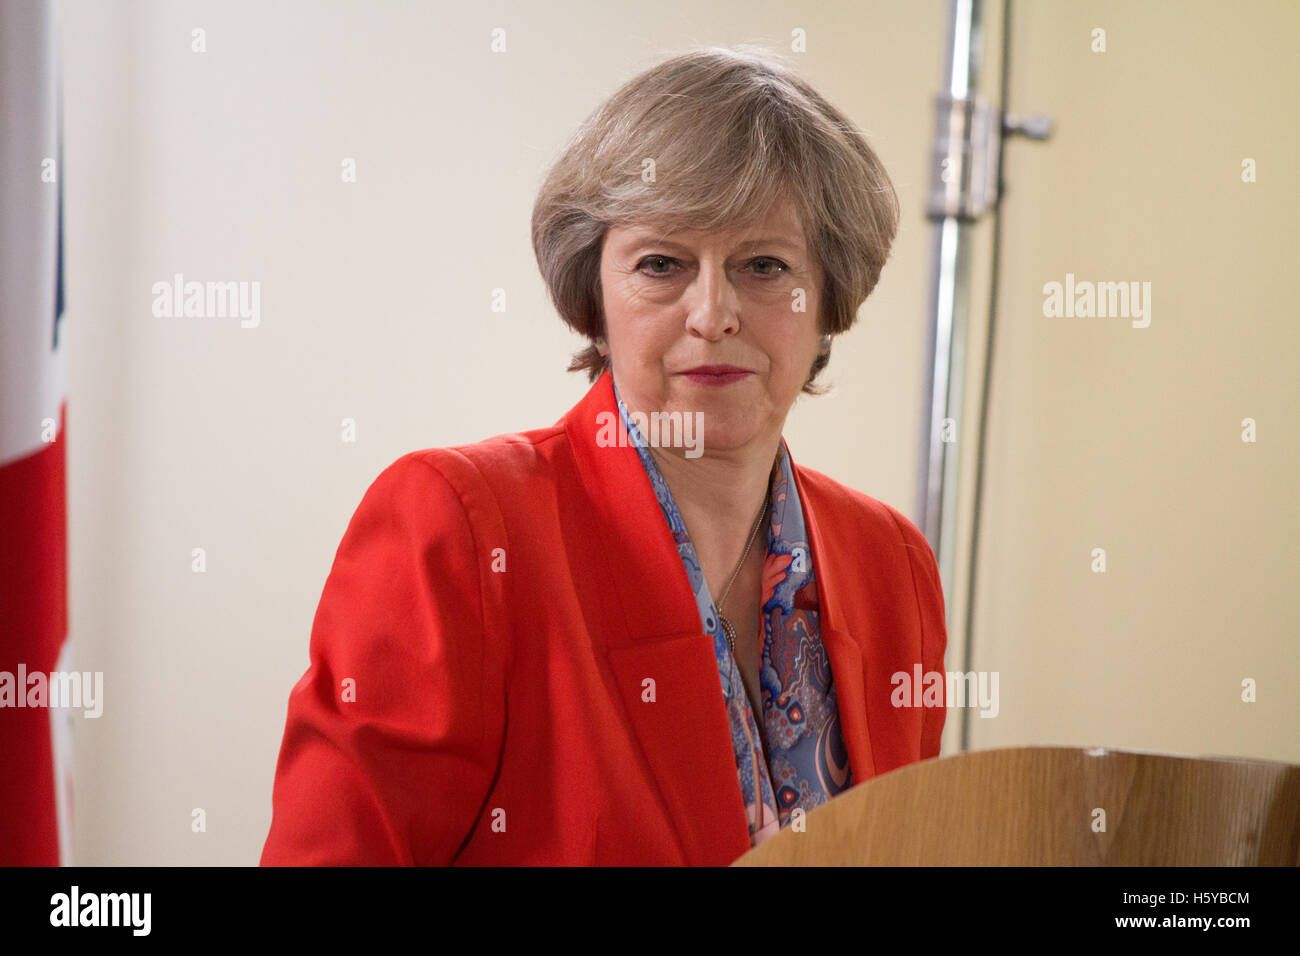 Brussels, Belgium. 20th October, 2016. British Prime minister Theresa May gives a press conference during the European - Stock Image